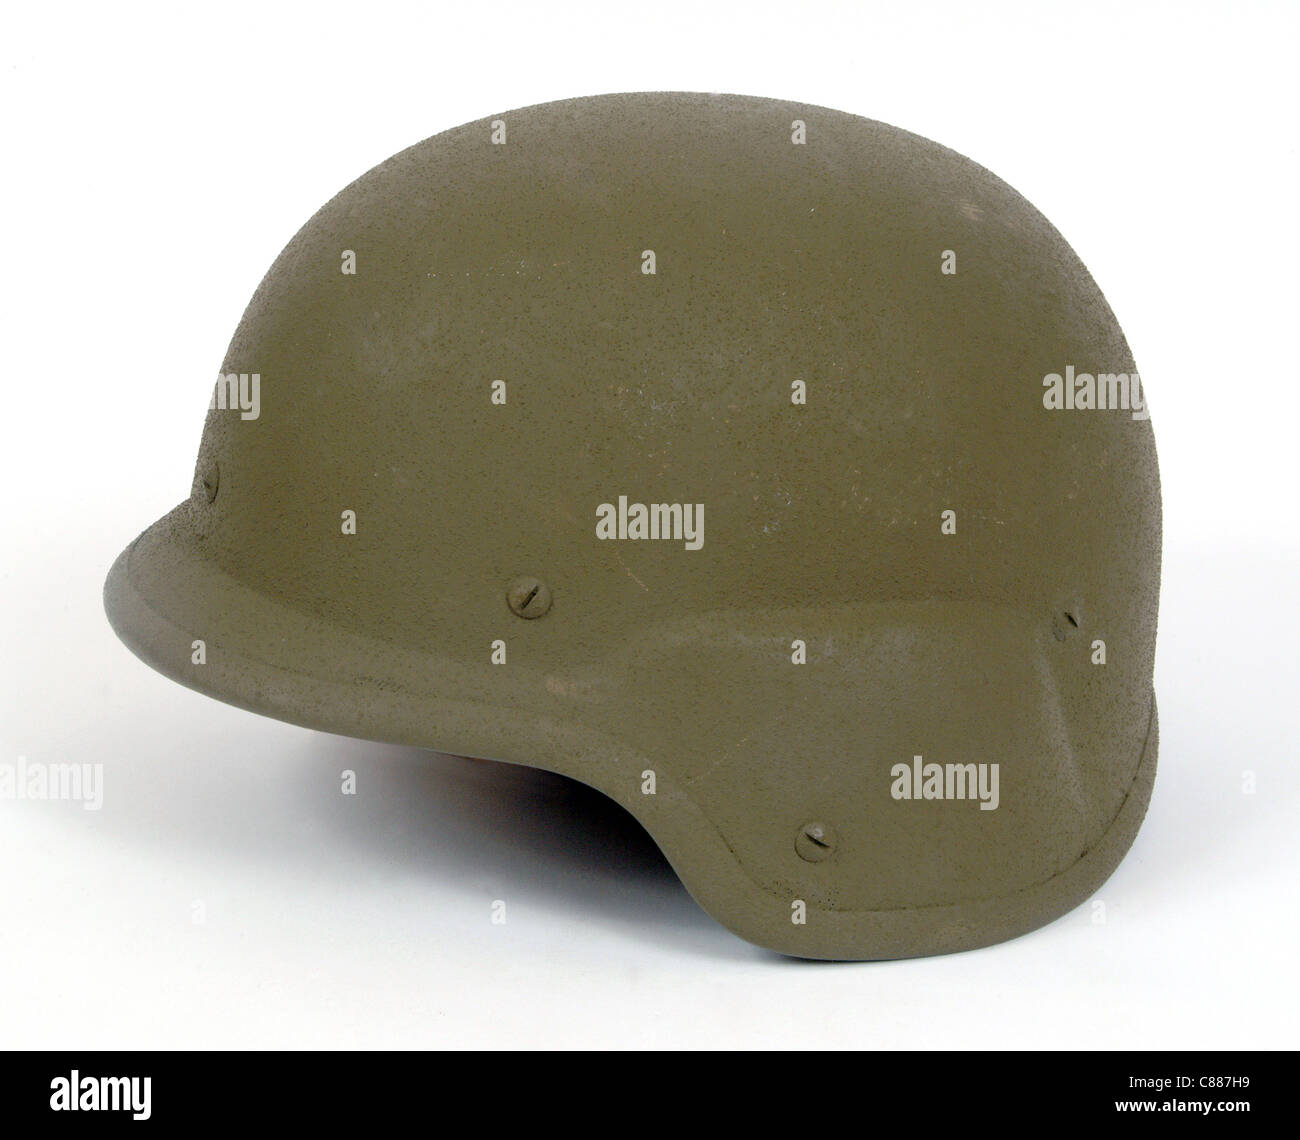 American PASGT kevlar protective combat helmet. Used during the Gulf War - Stock Image